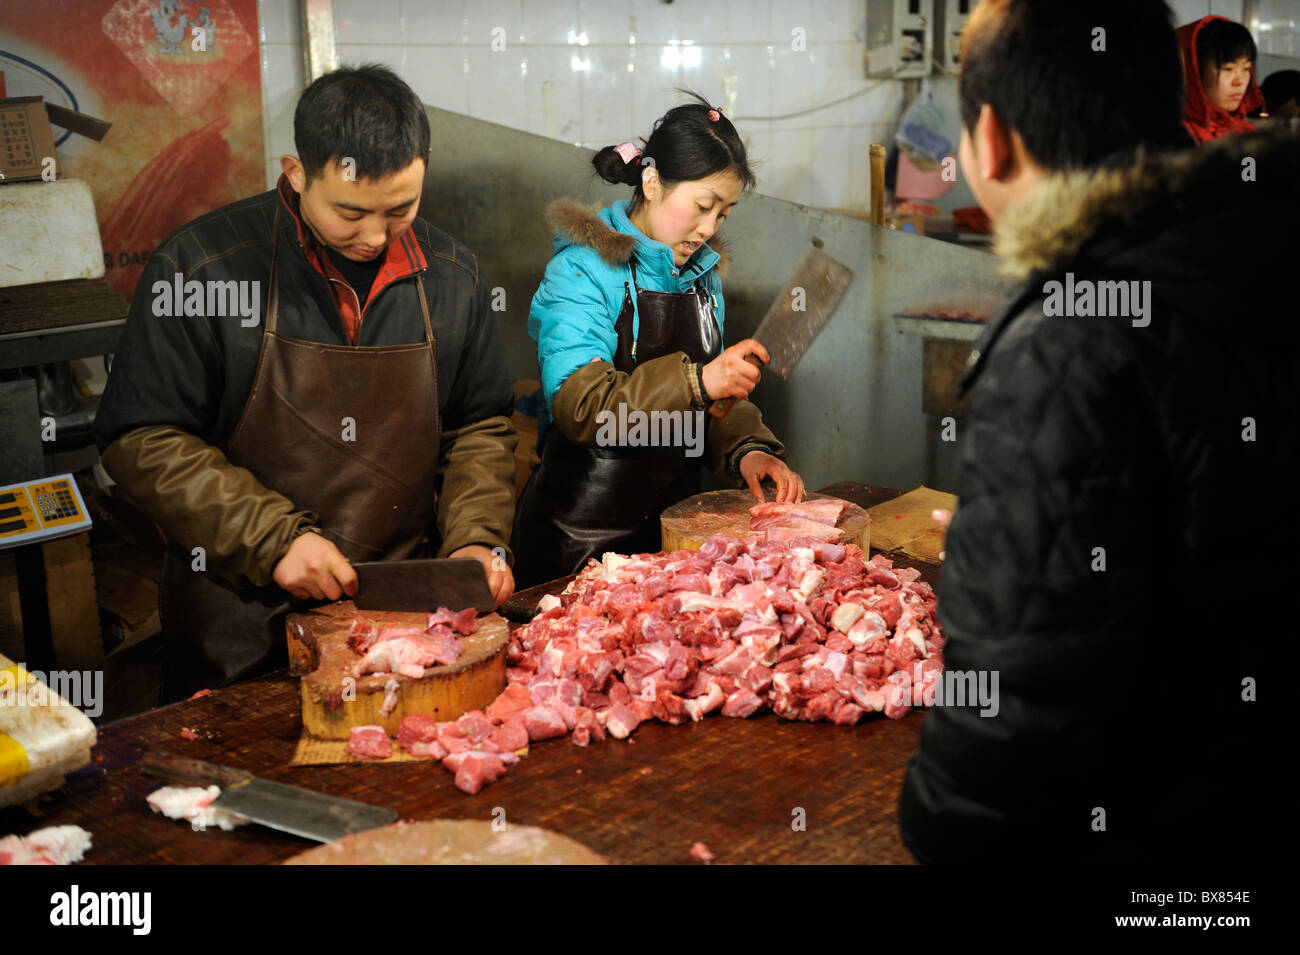 Chinese vendors sell pork at a market in Beijing, China. 10-Dec-2010 - Stock Image